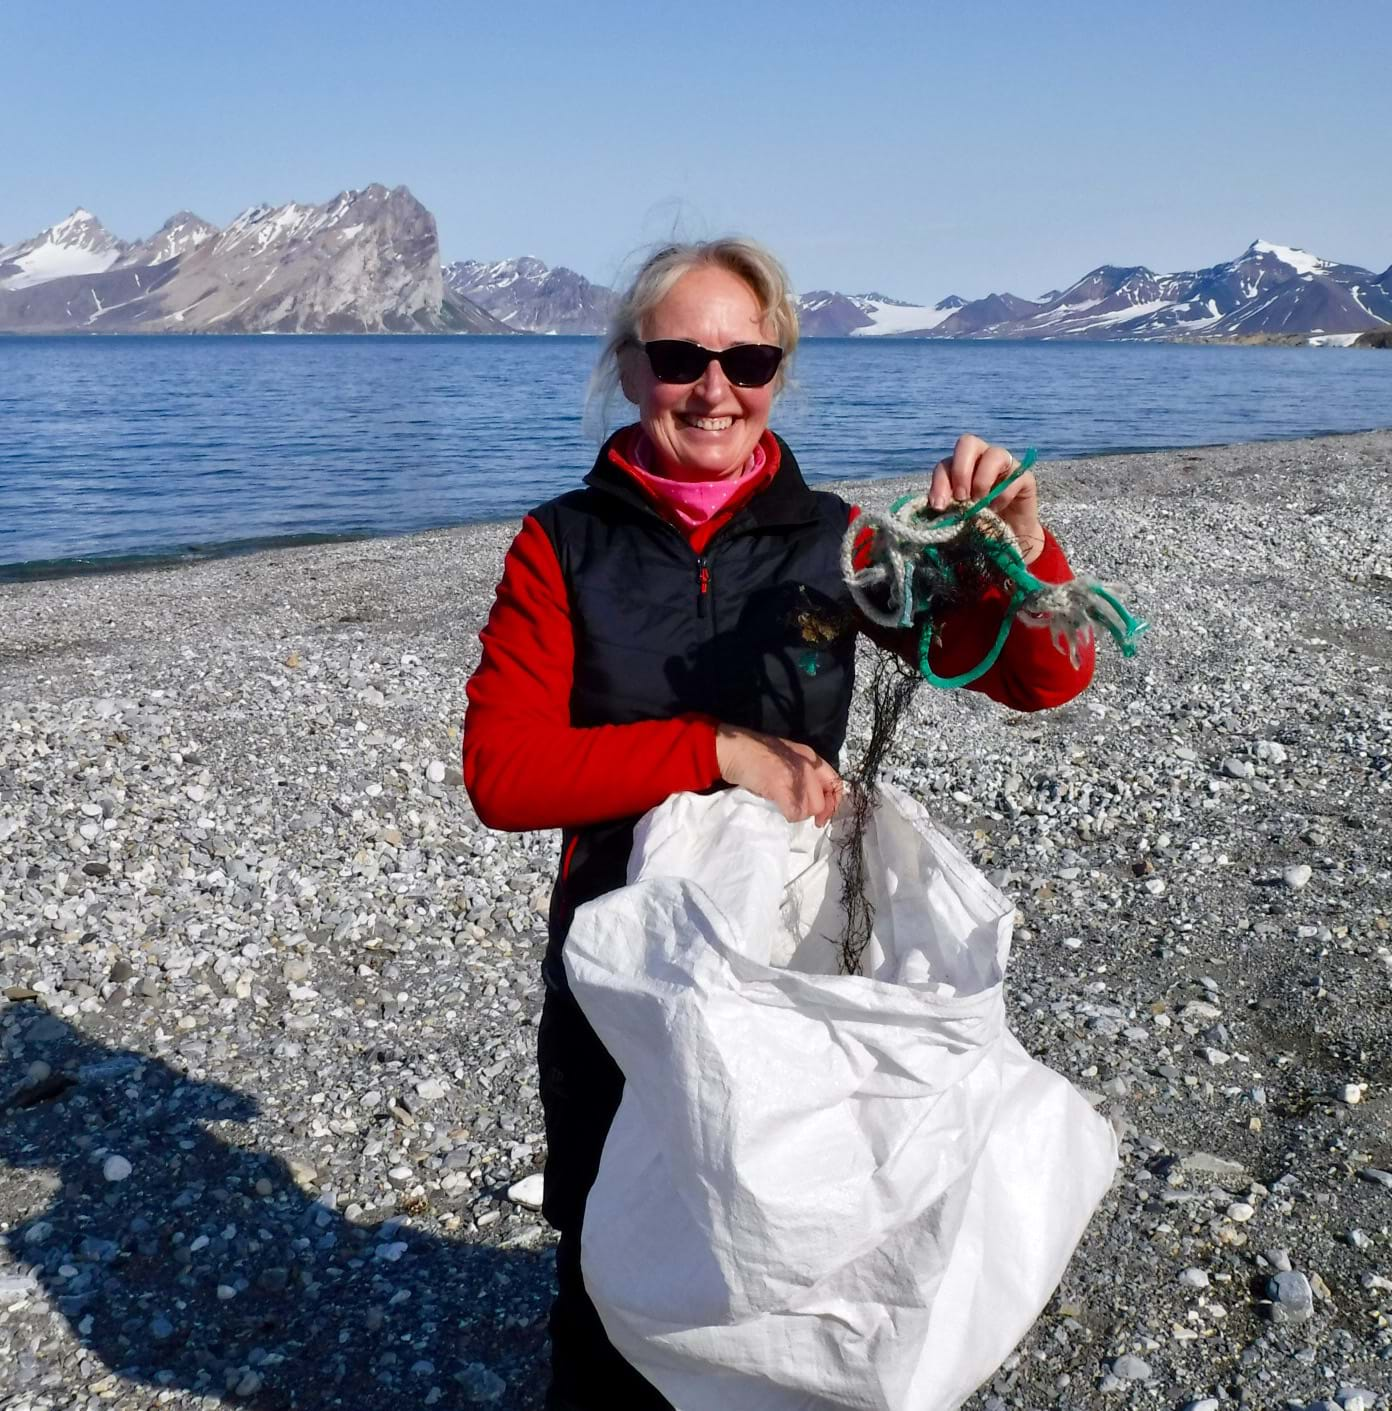 Regional Manager Julie Waites on a beach in Norway picking up litter